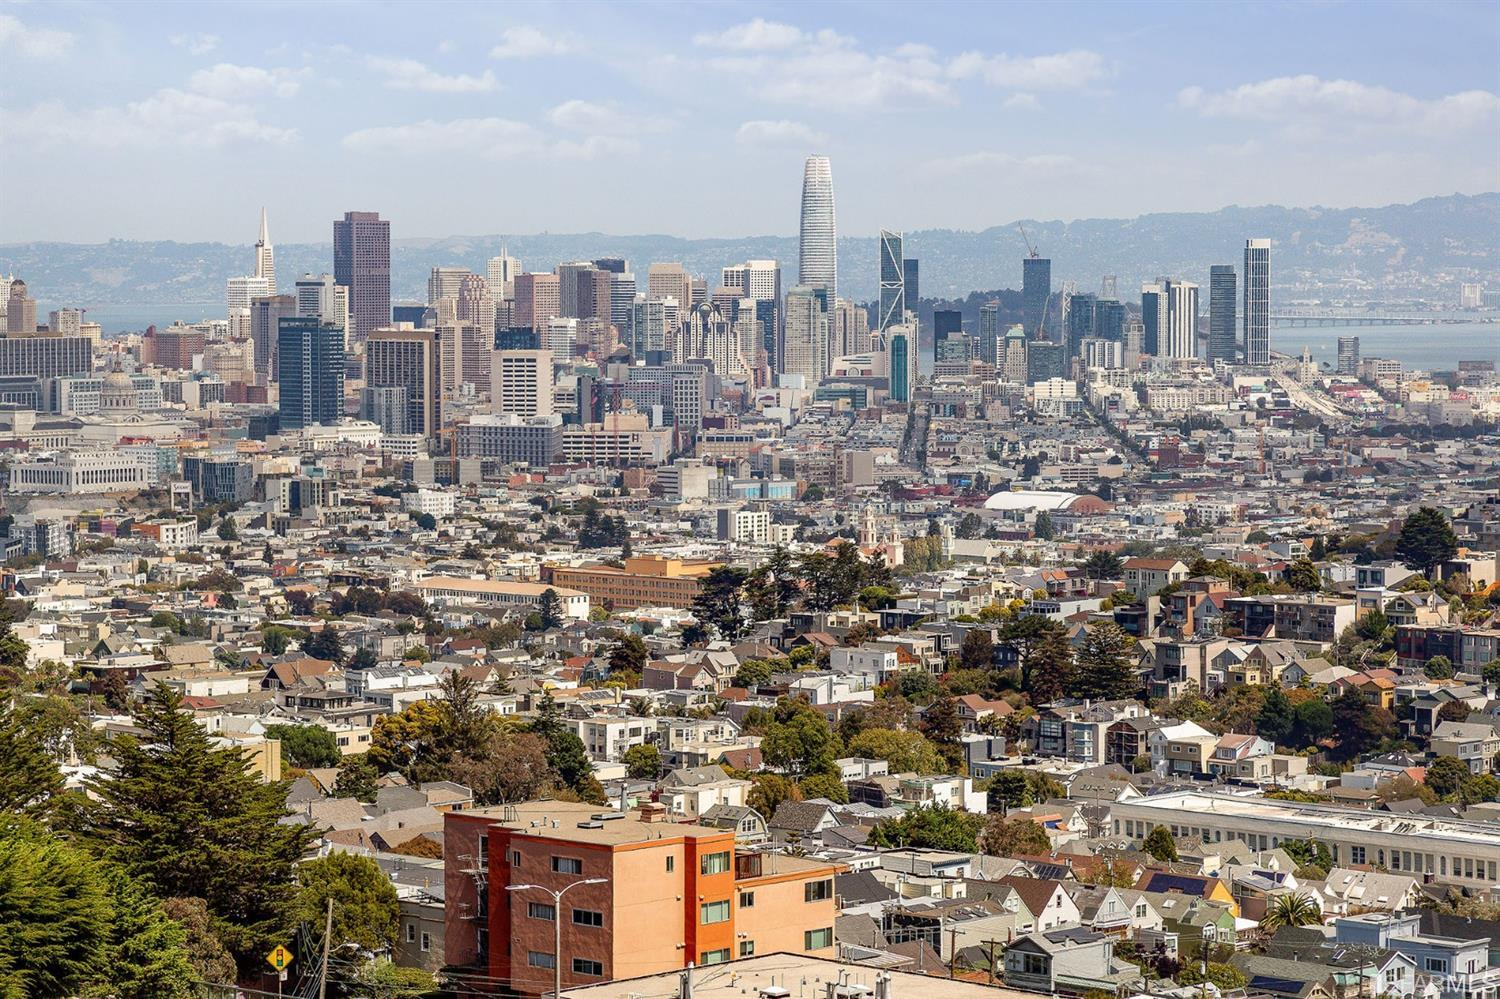 SOLD - 15 Perego Terrace #5, San Francisco, CA3bed/2bath, 1470 sf$1,368,000Represented BuyersPreemptive Offer, 21 day close